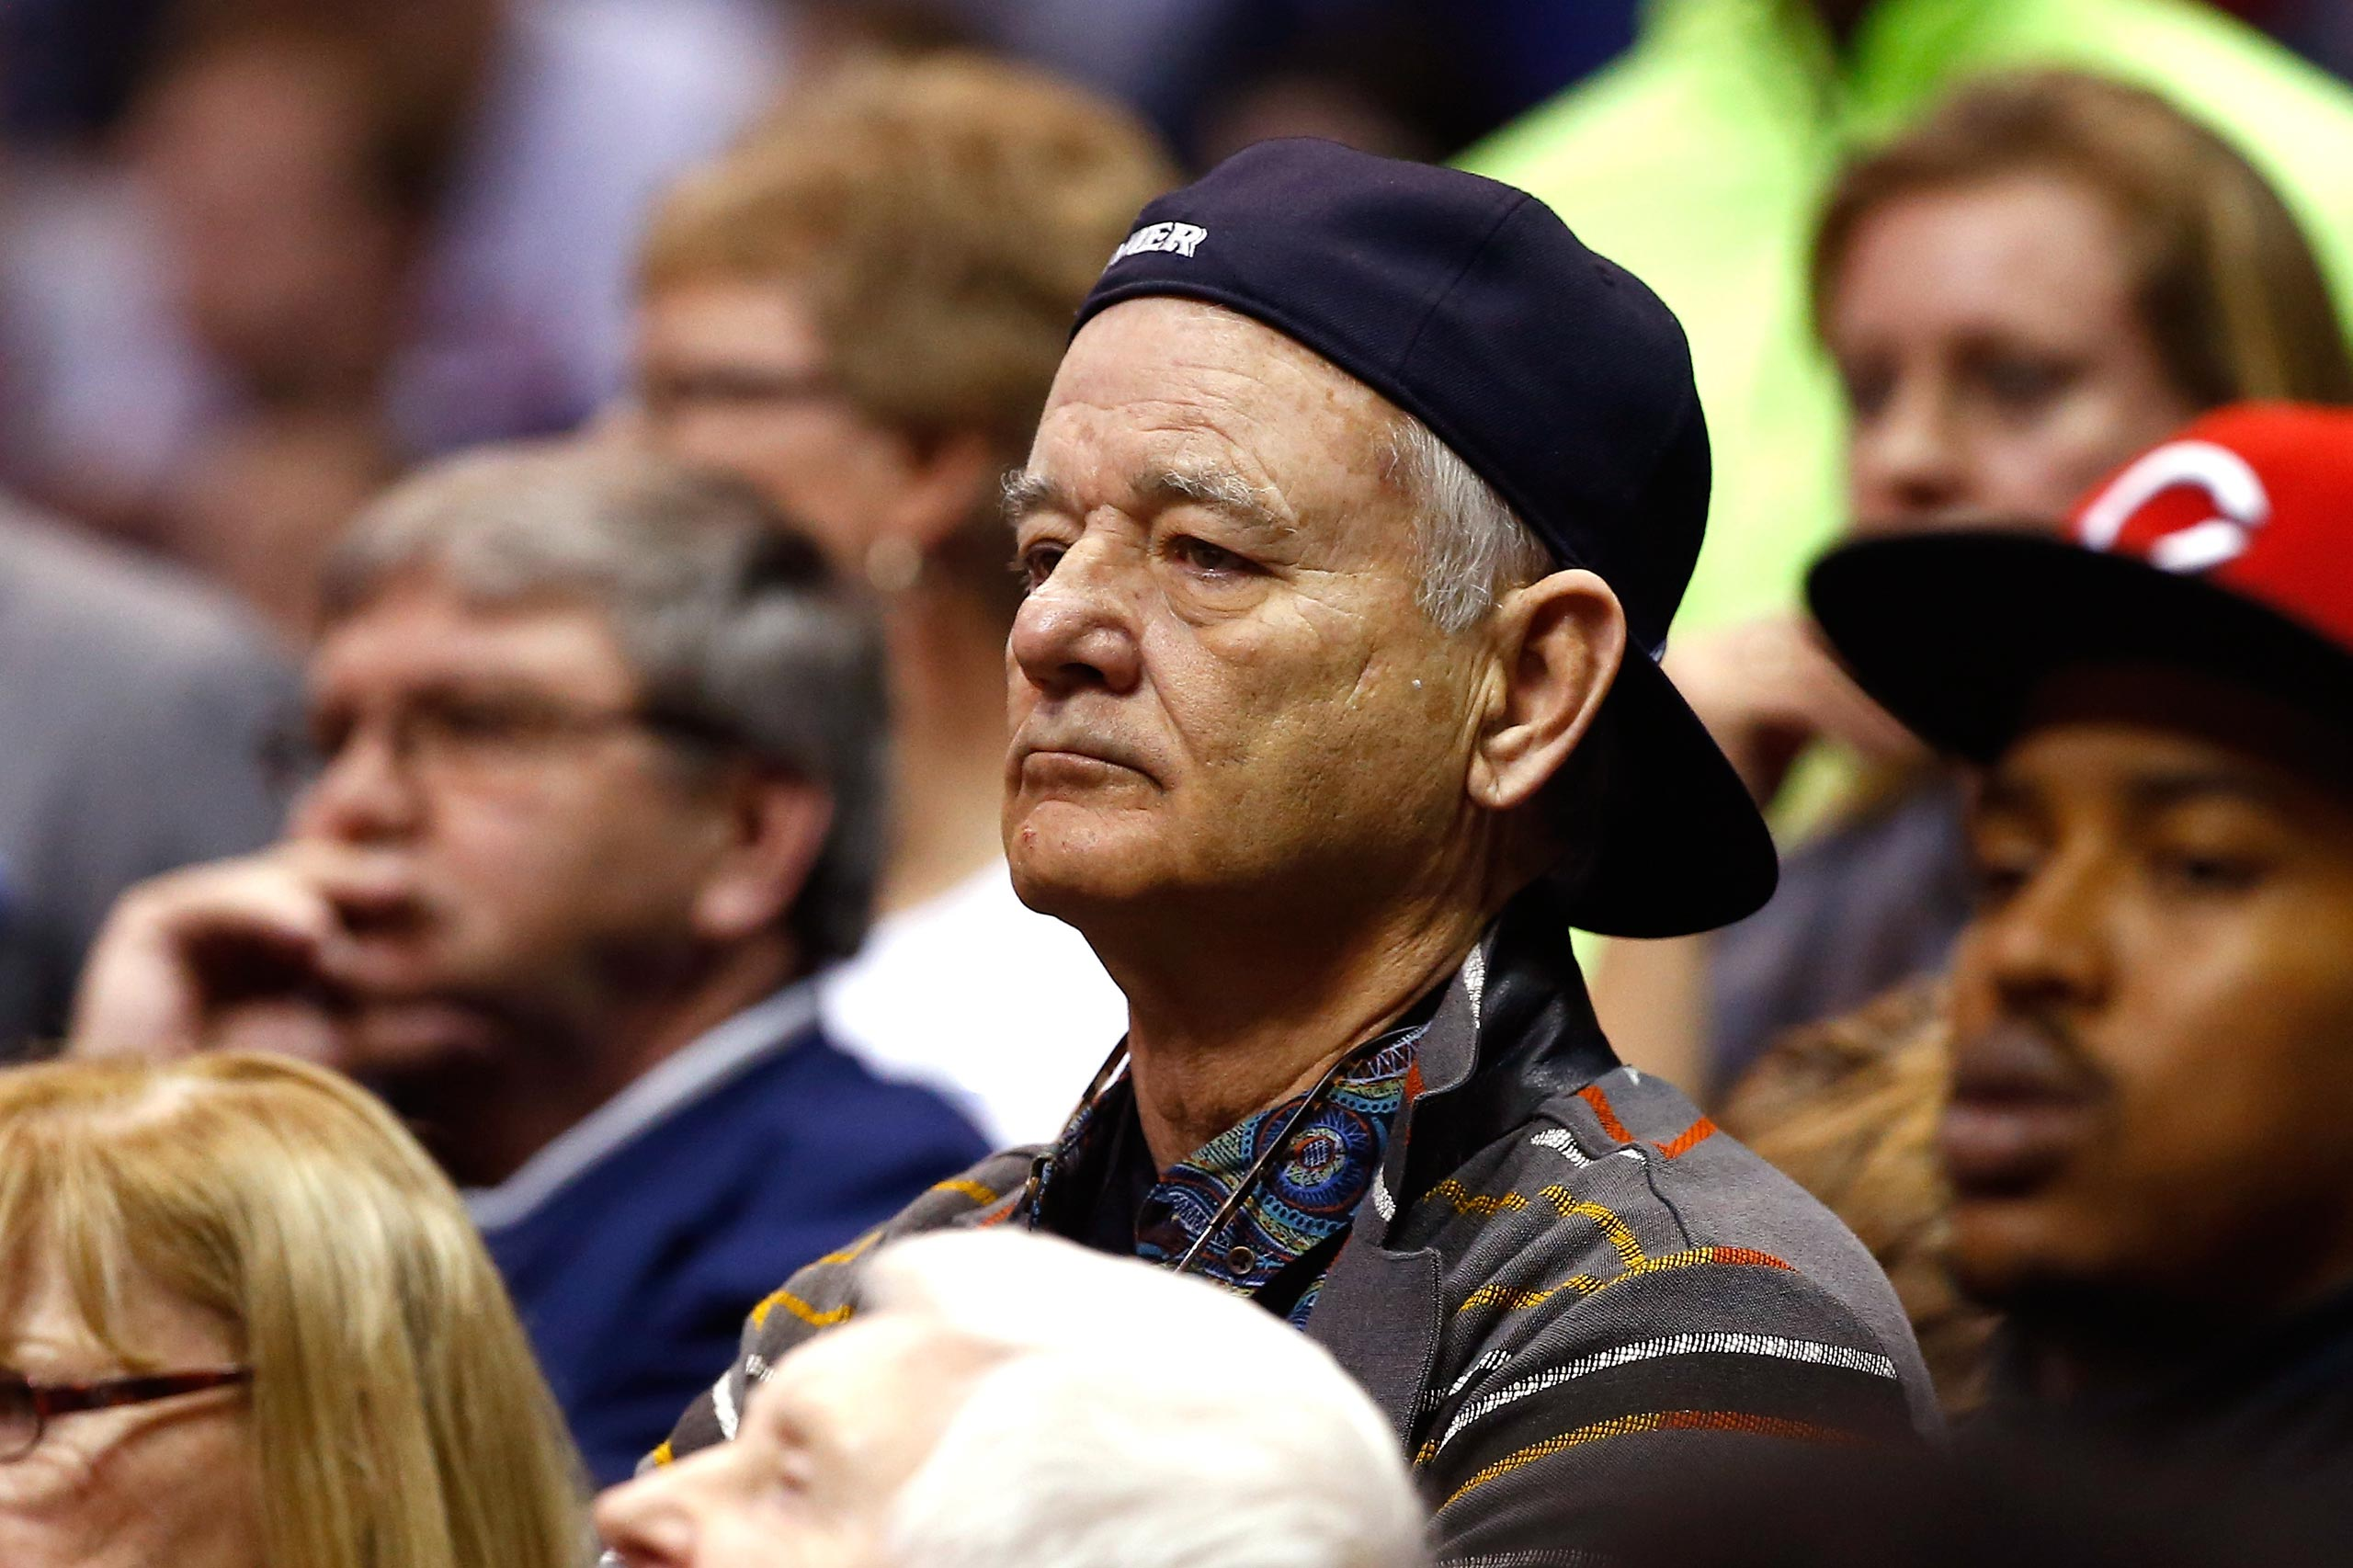 Actor Bill Murray attends the game between the Xavier Musketeers and the Wisconsin Badgers during the second round of the 2016 NCAA Men's Basketball Tournament at Scottrade Center in St. Louis, Mo., March 20, 2016. Murray's son Luke Murray is an assistant coach for the Musketeers.